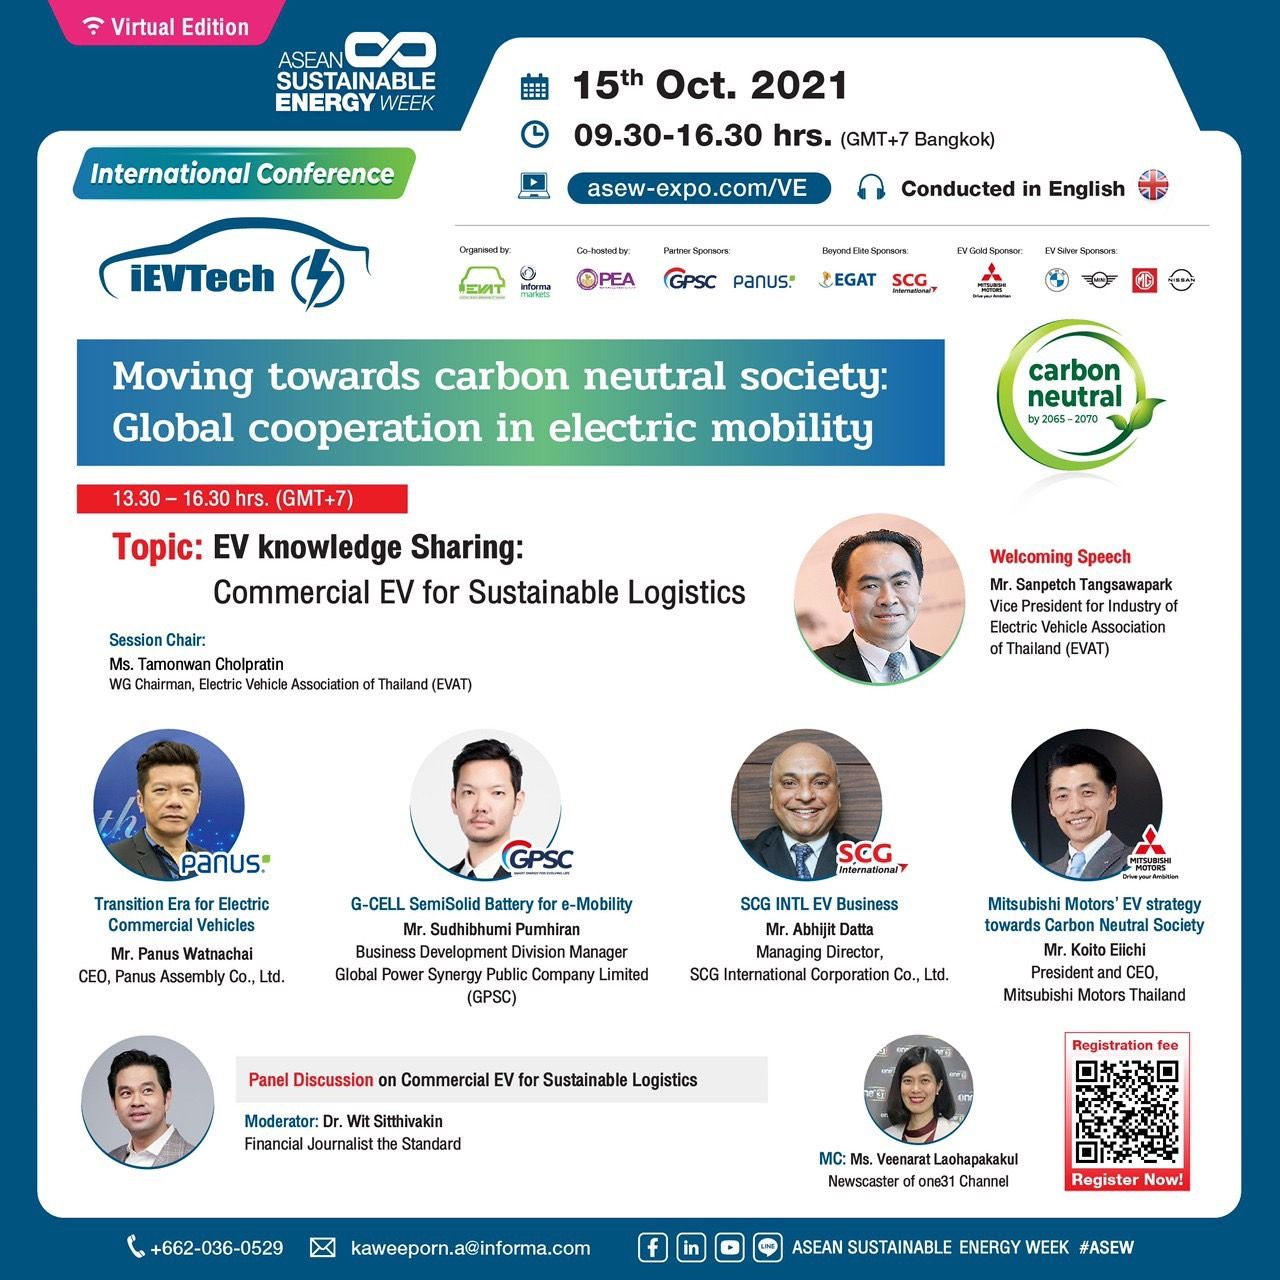 iEVTech - EV knowledge sharing: Commercial EV for Sustainable Logistics (Parallel Session)